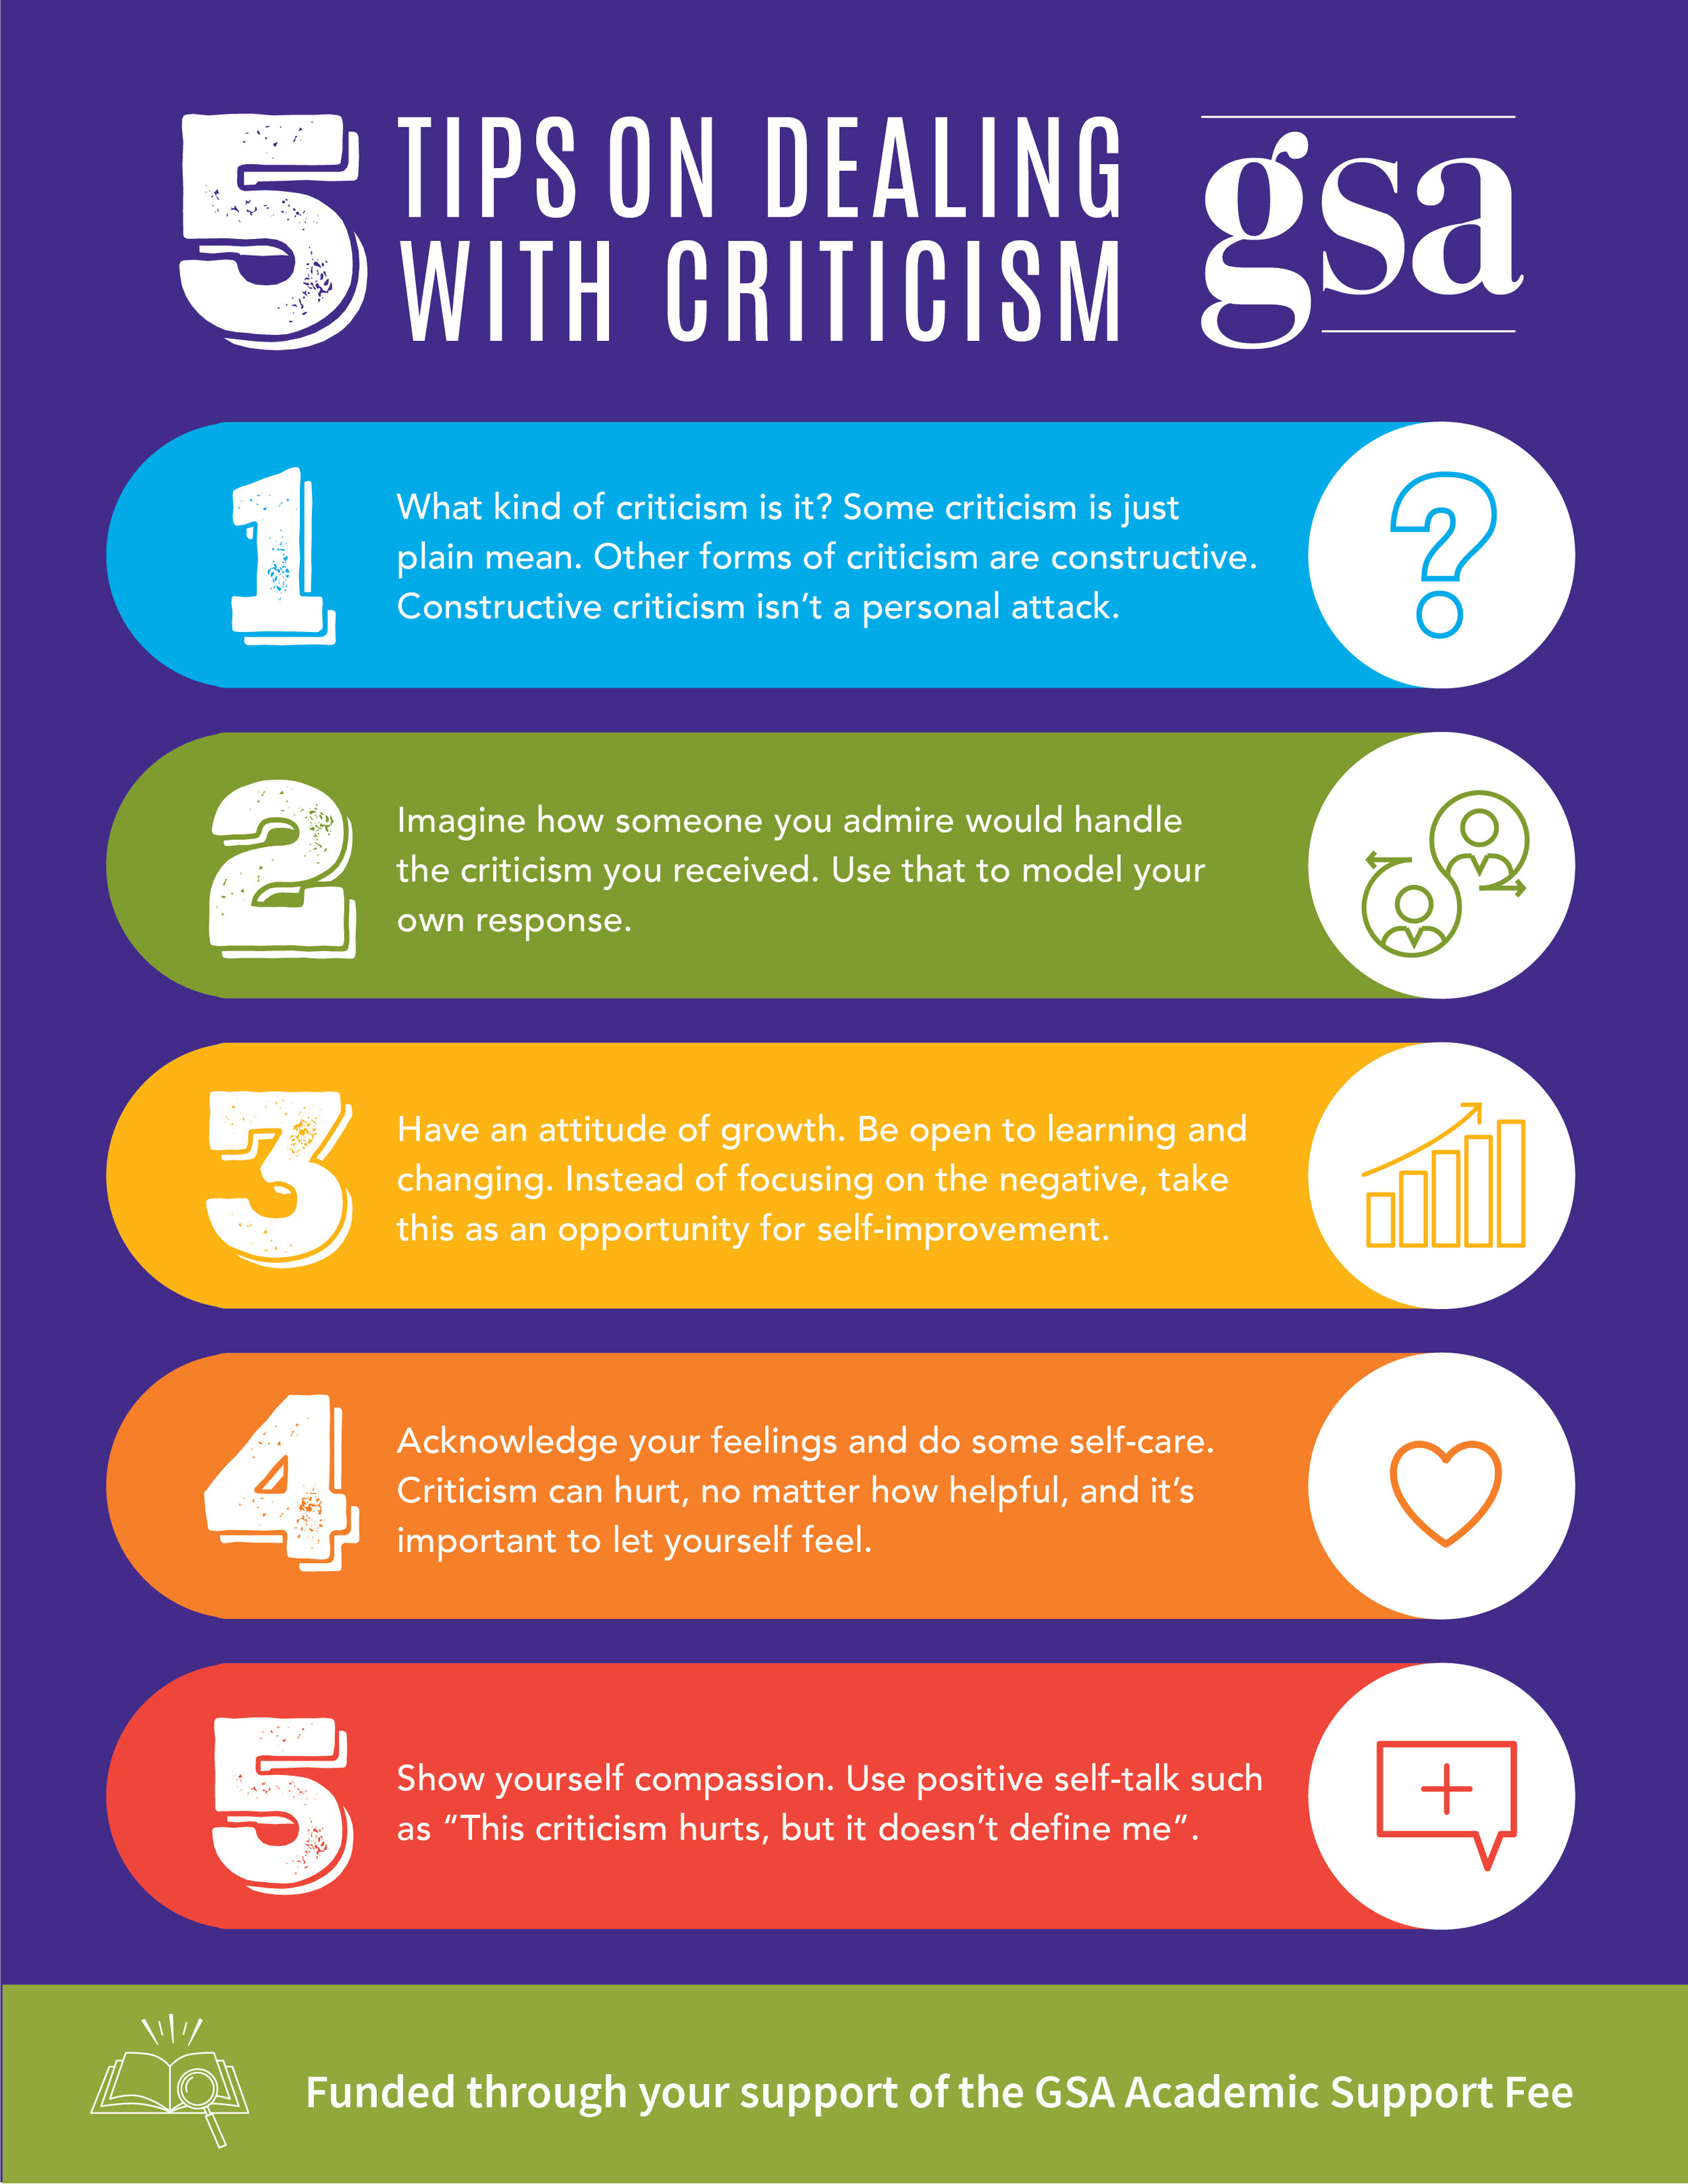 """5 Tips on Dealing with Criticism:  1. What kind of criticism is it? Some criticism is just plain mean. Other forms of criticism are constructive. Constructive criticism isn't a personal attack.  2. Imagine how someone you admire would handle the criticism you received. Use that to model your own response.  3. Have an attitude of growth. Be open to learning and changing. Instead of focusing on the negative, take this as an opportunity for self-improvement.  4. Acknowledge your feelings and do some self-care. Criticism can hurt, no matter how helpful, and it's important to let yourself feel.  5. Show yourself compassion. Use positive self-talk such as """"This criticism hurts, but it doesn't define me"""".  Funded through your support of the GSA Academic Support Fee"""